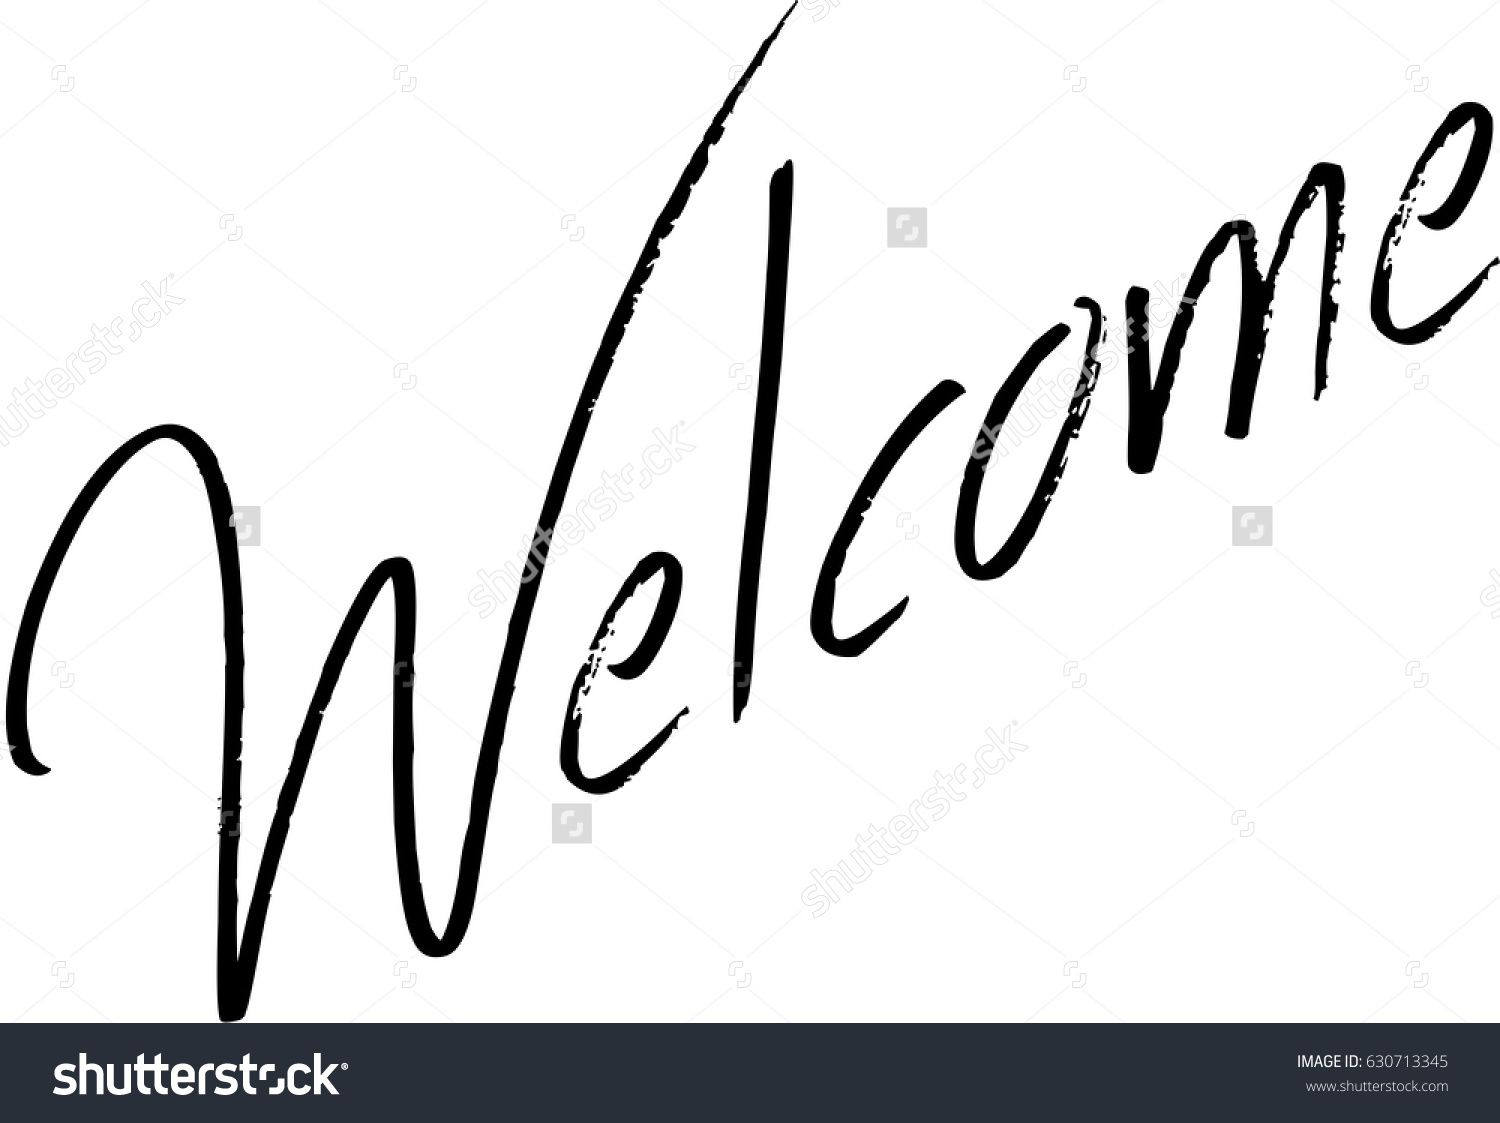 welcome text sign illustration on white bavkground